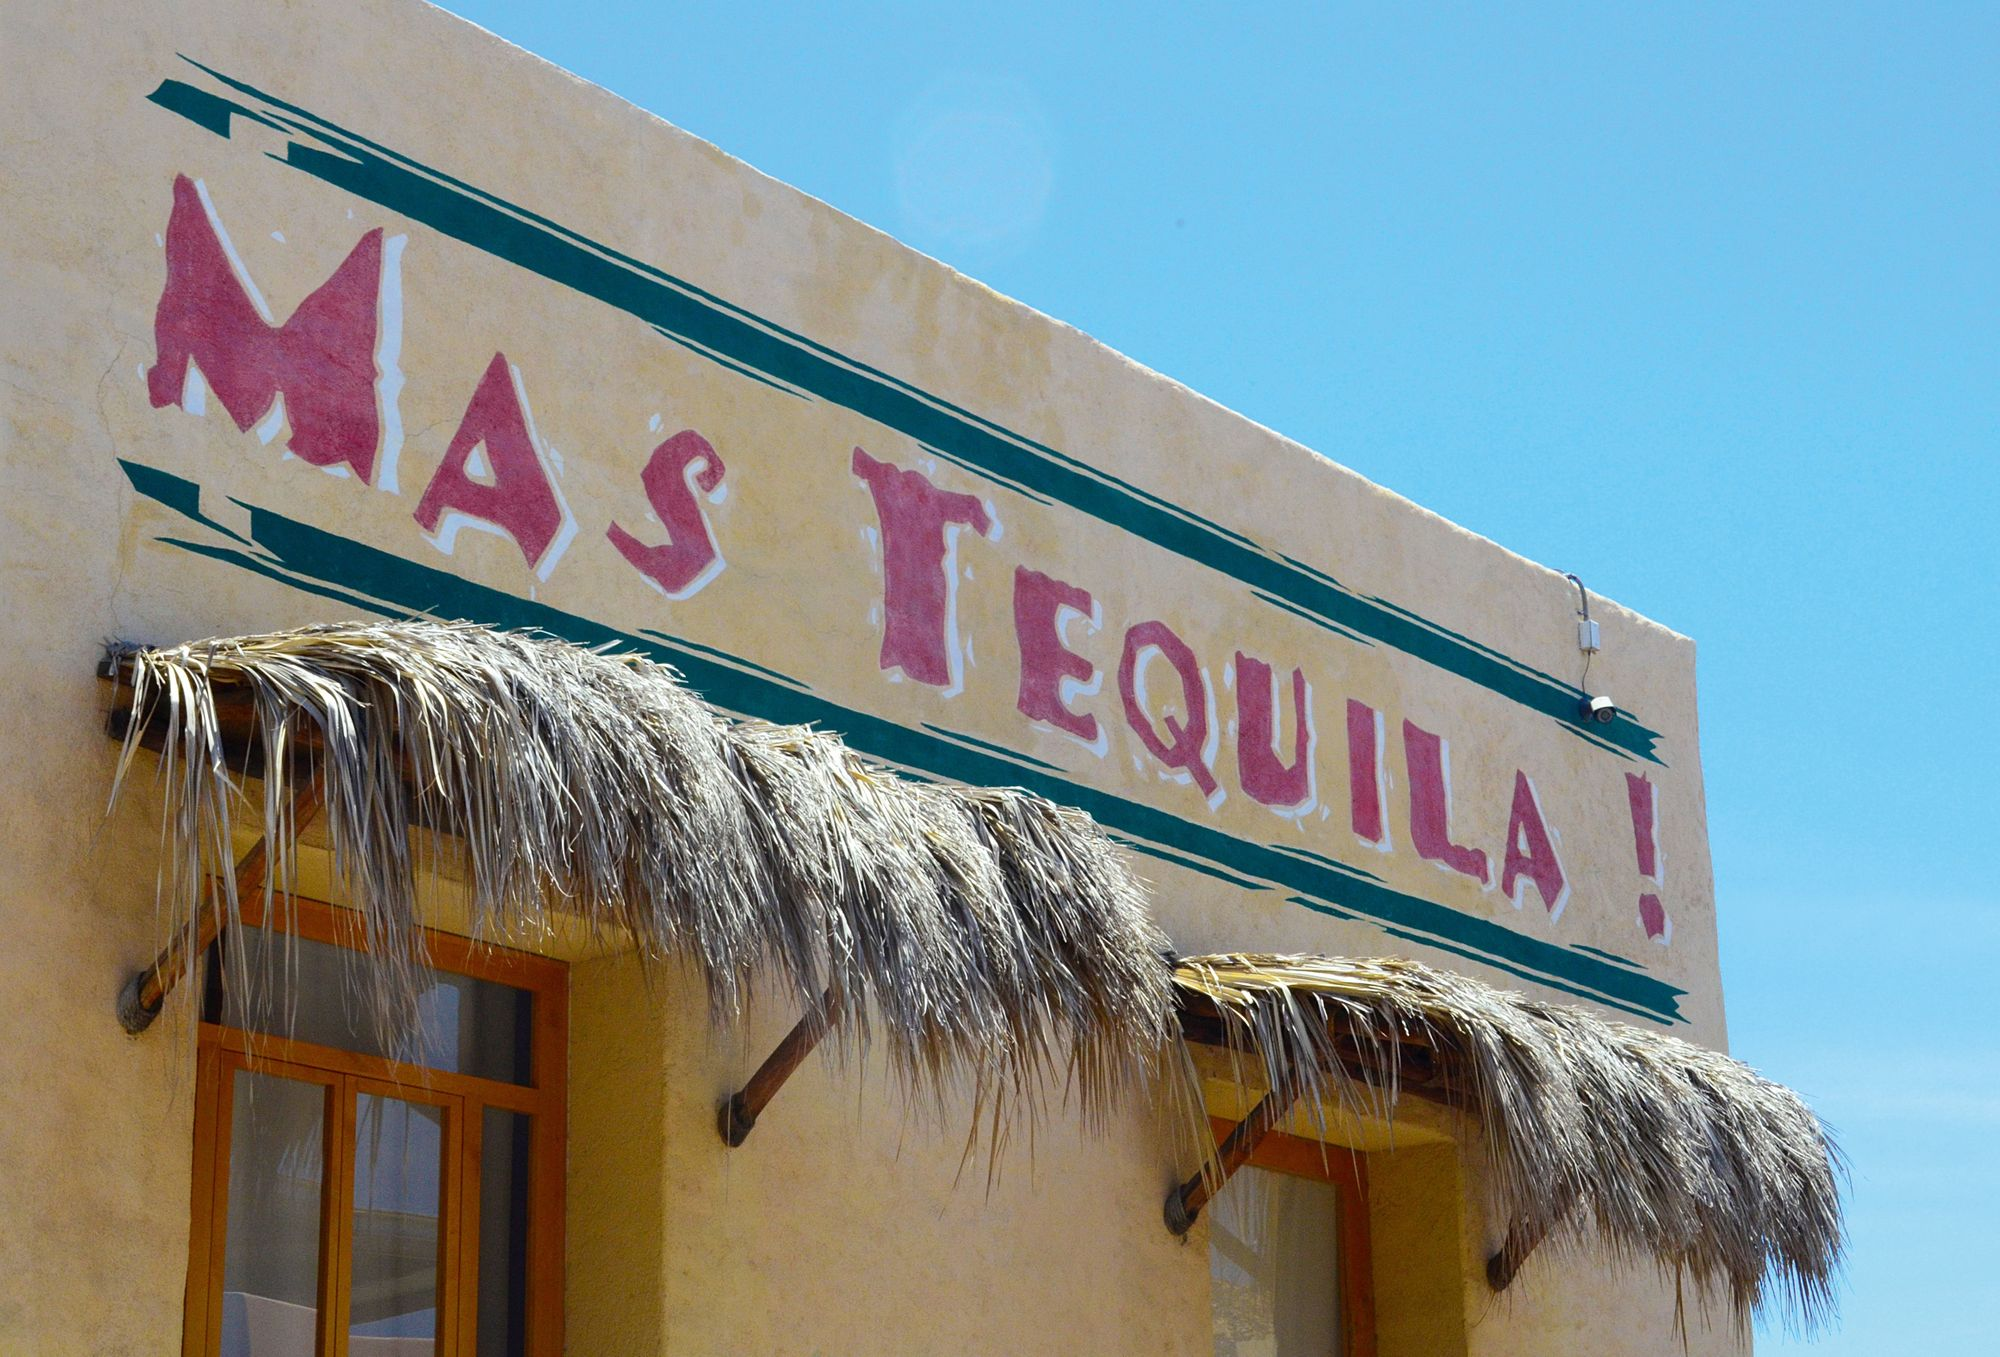 A Mexican tequila bar